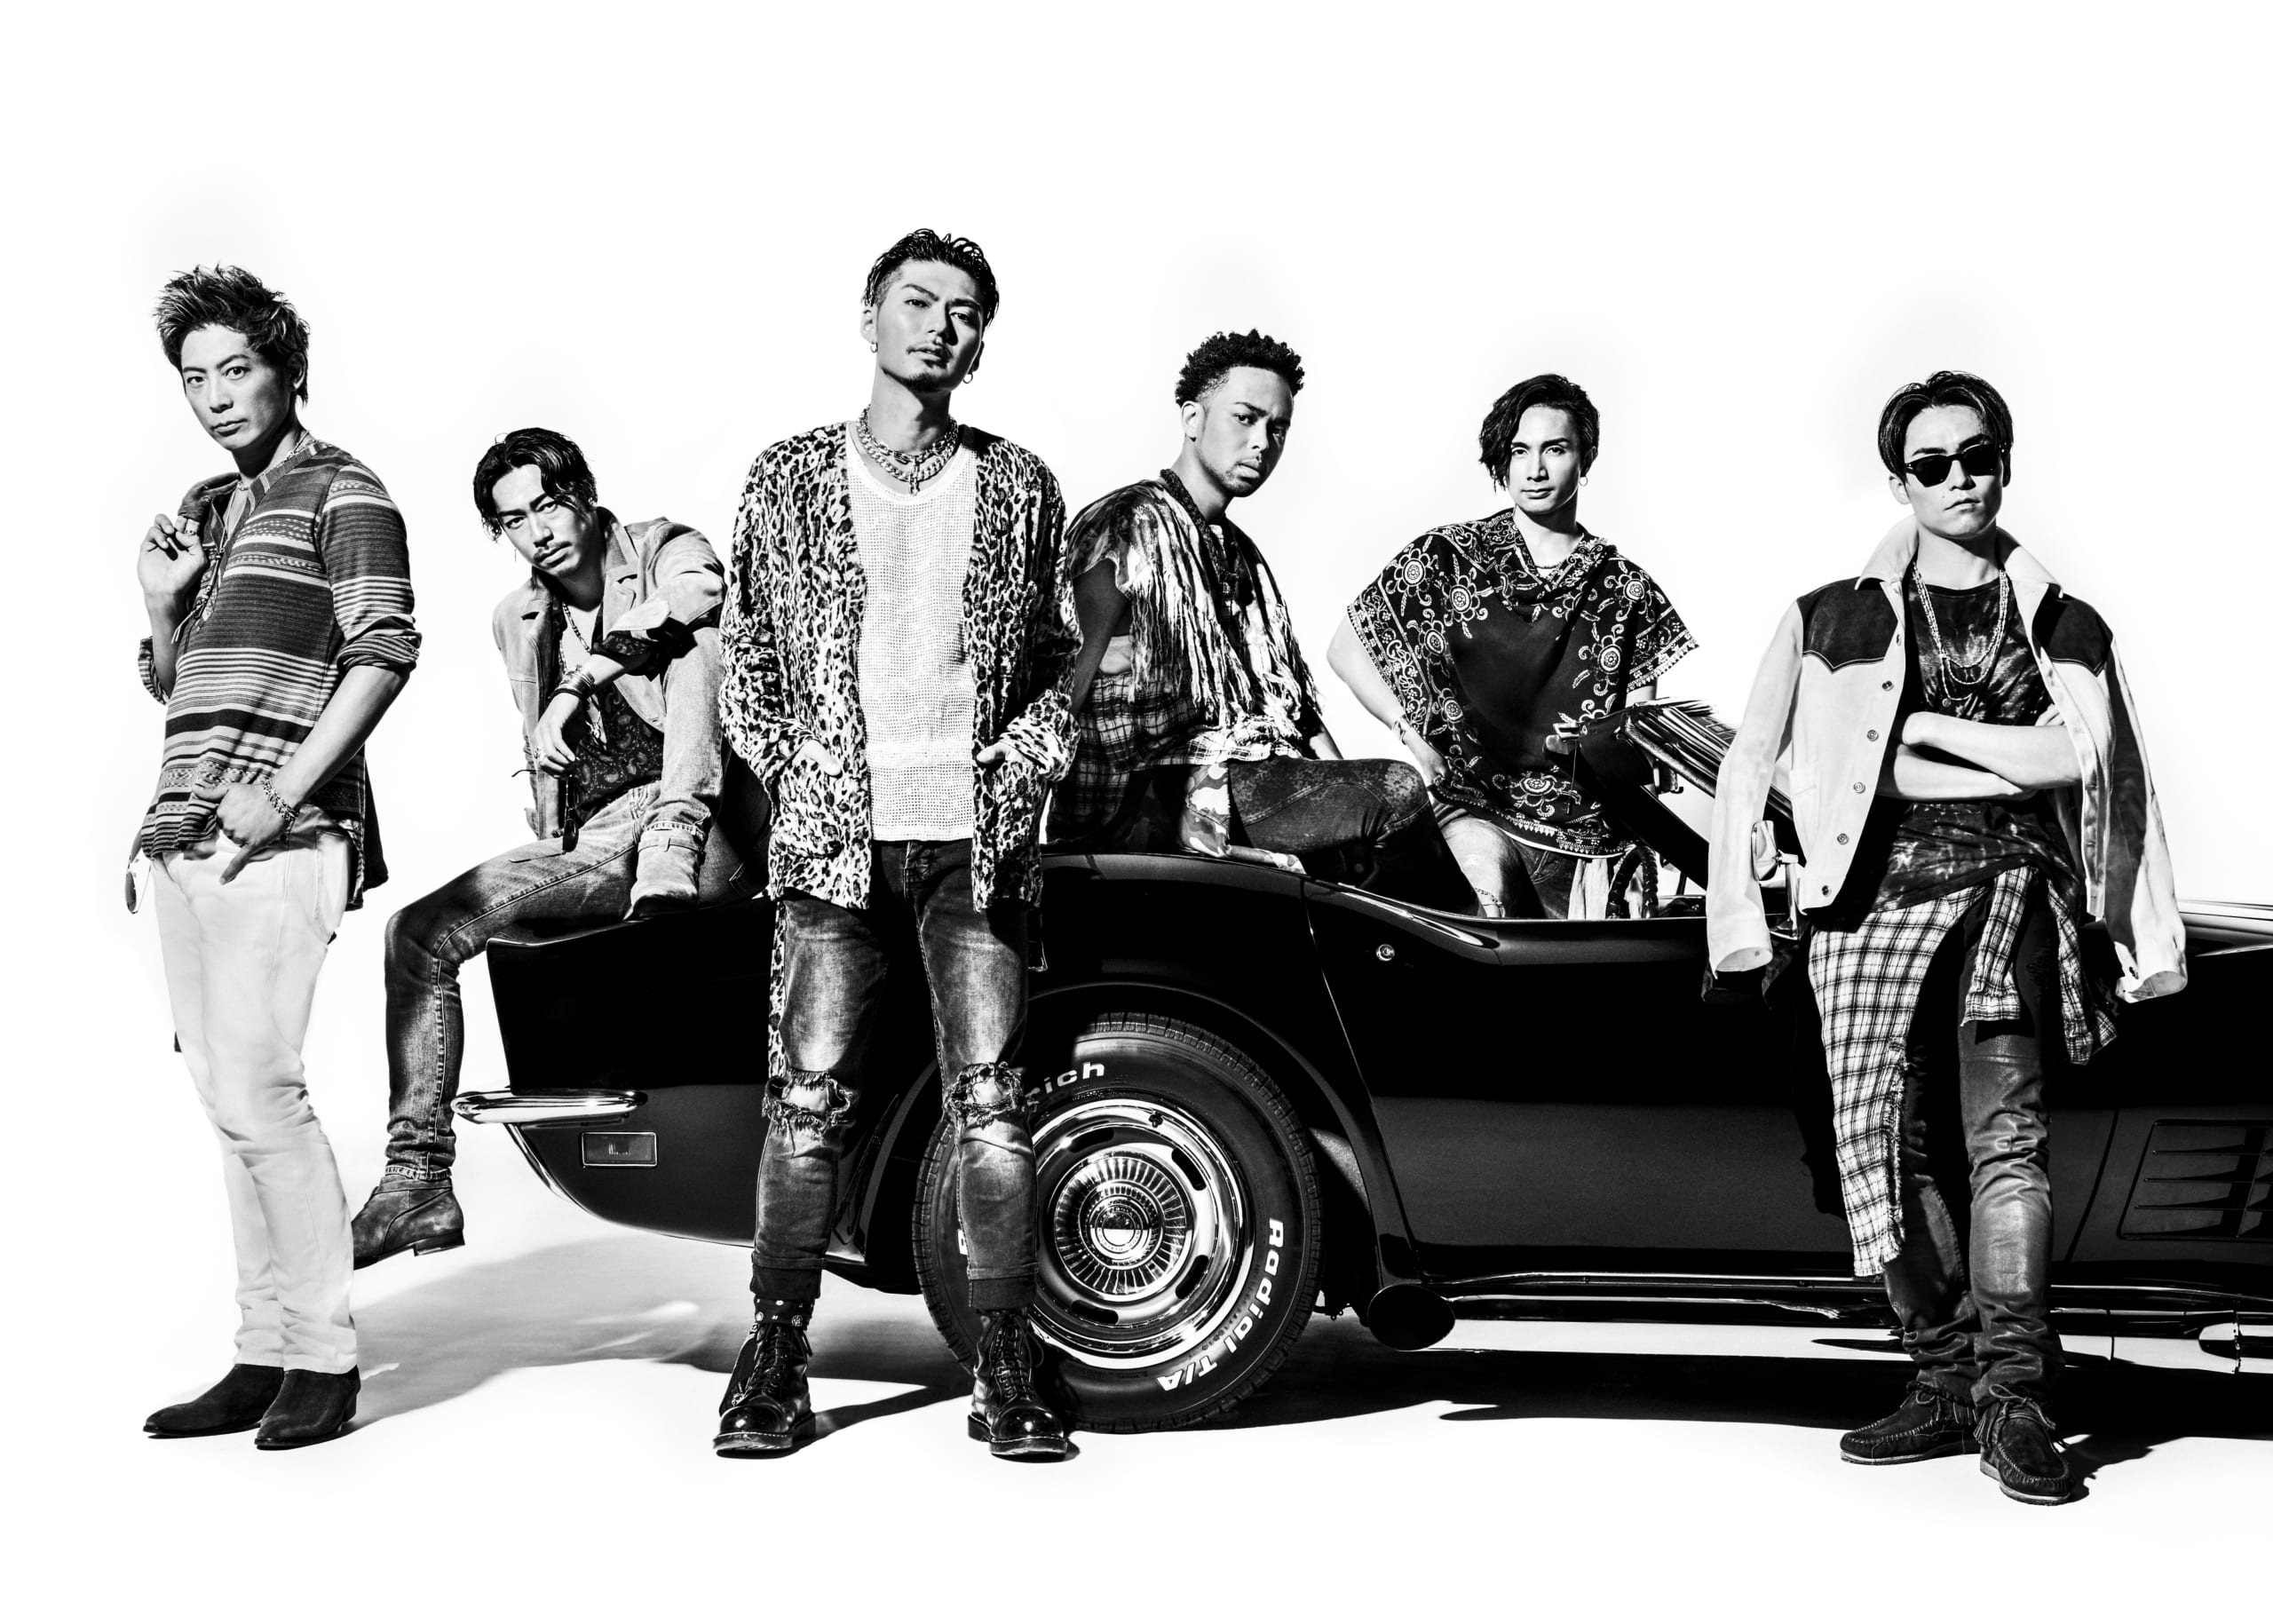 EXILE THE SECOND<br />「Route 66」~ロングインタビュー~<br />『新たな挑戦』